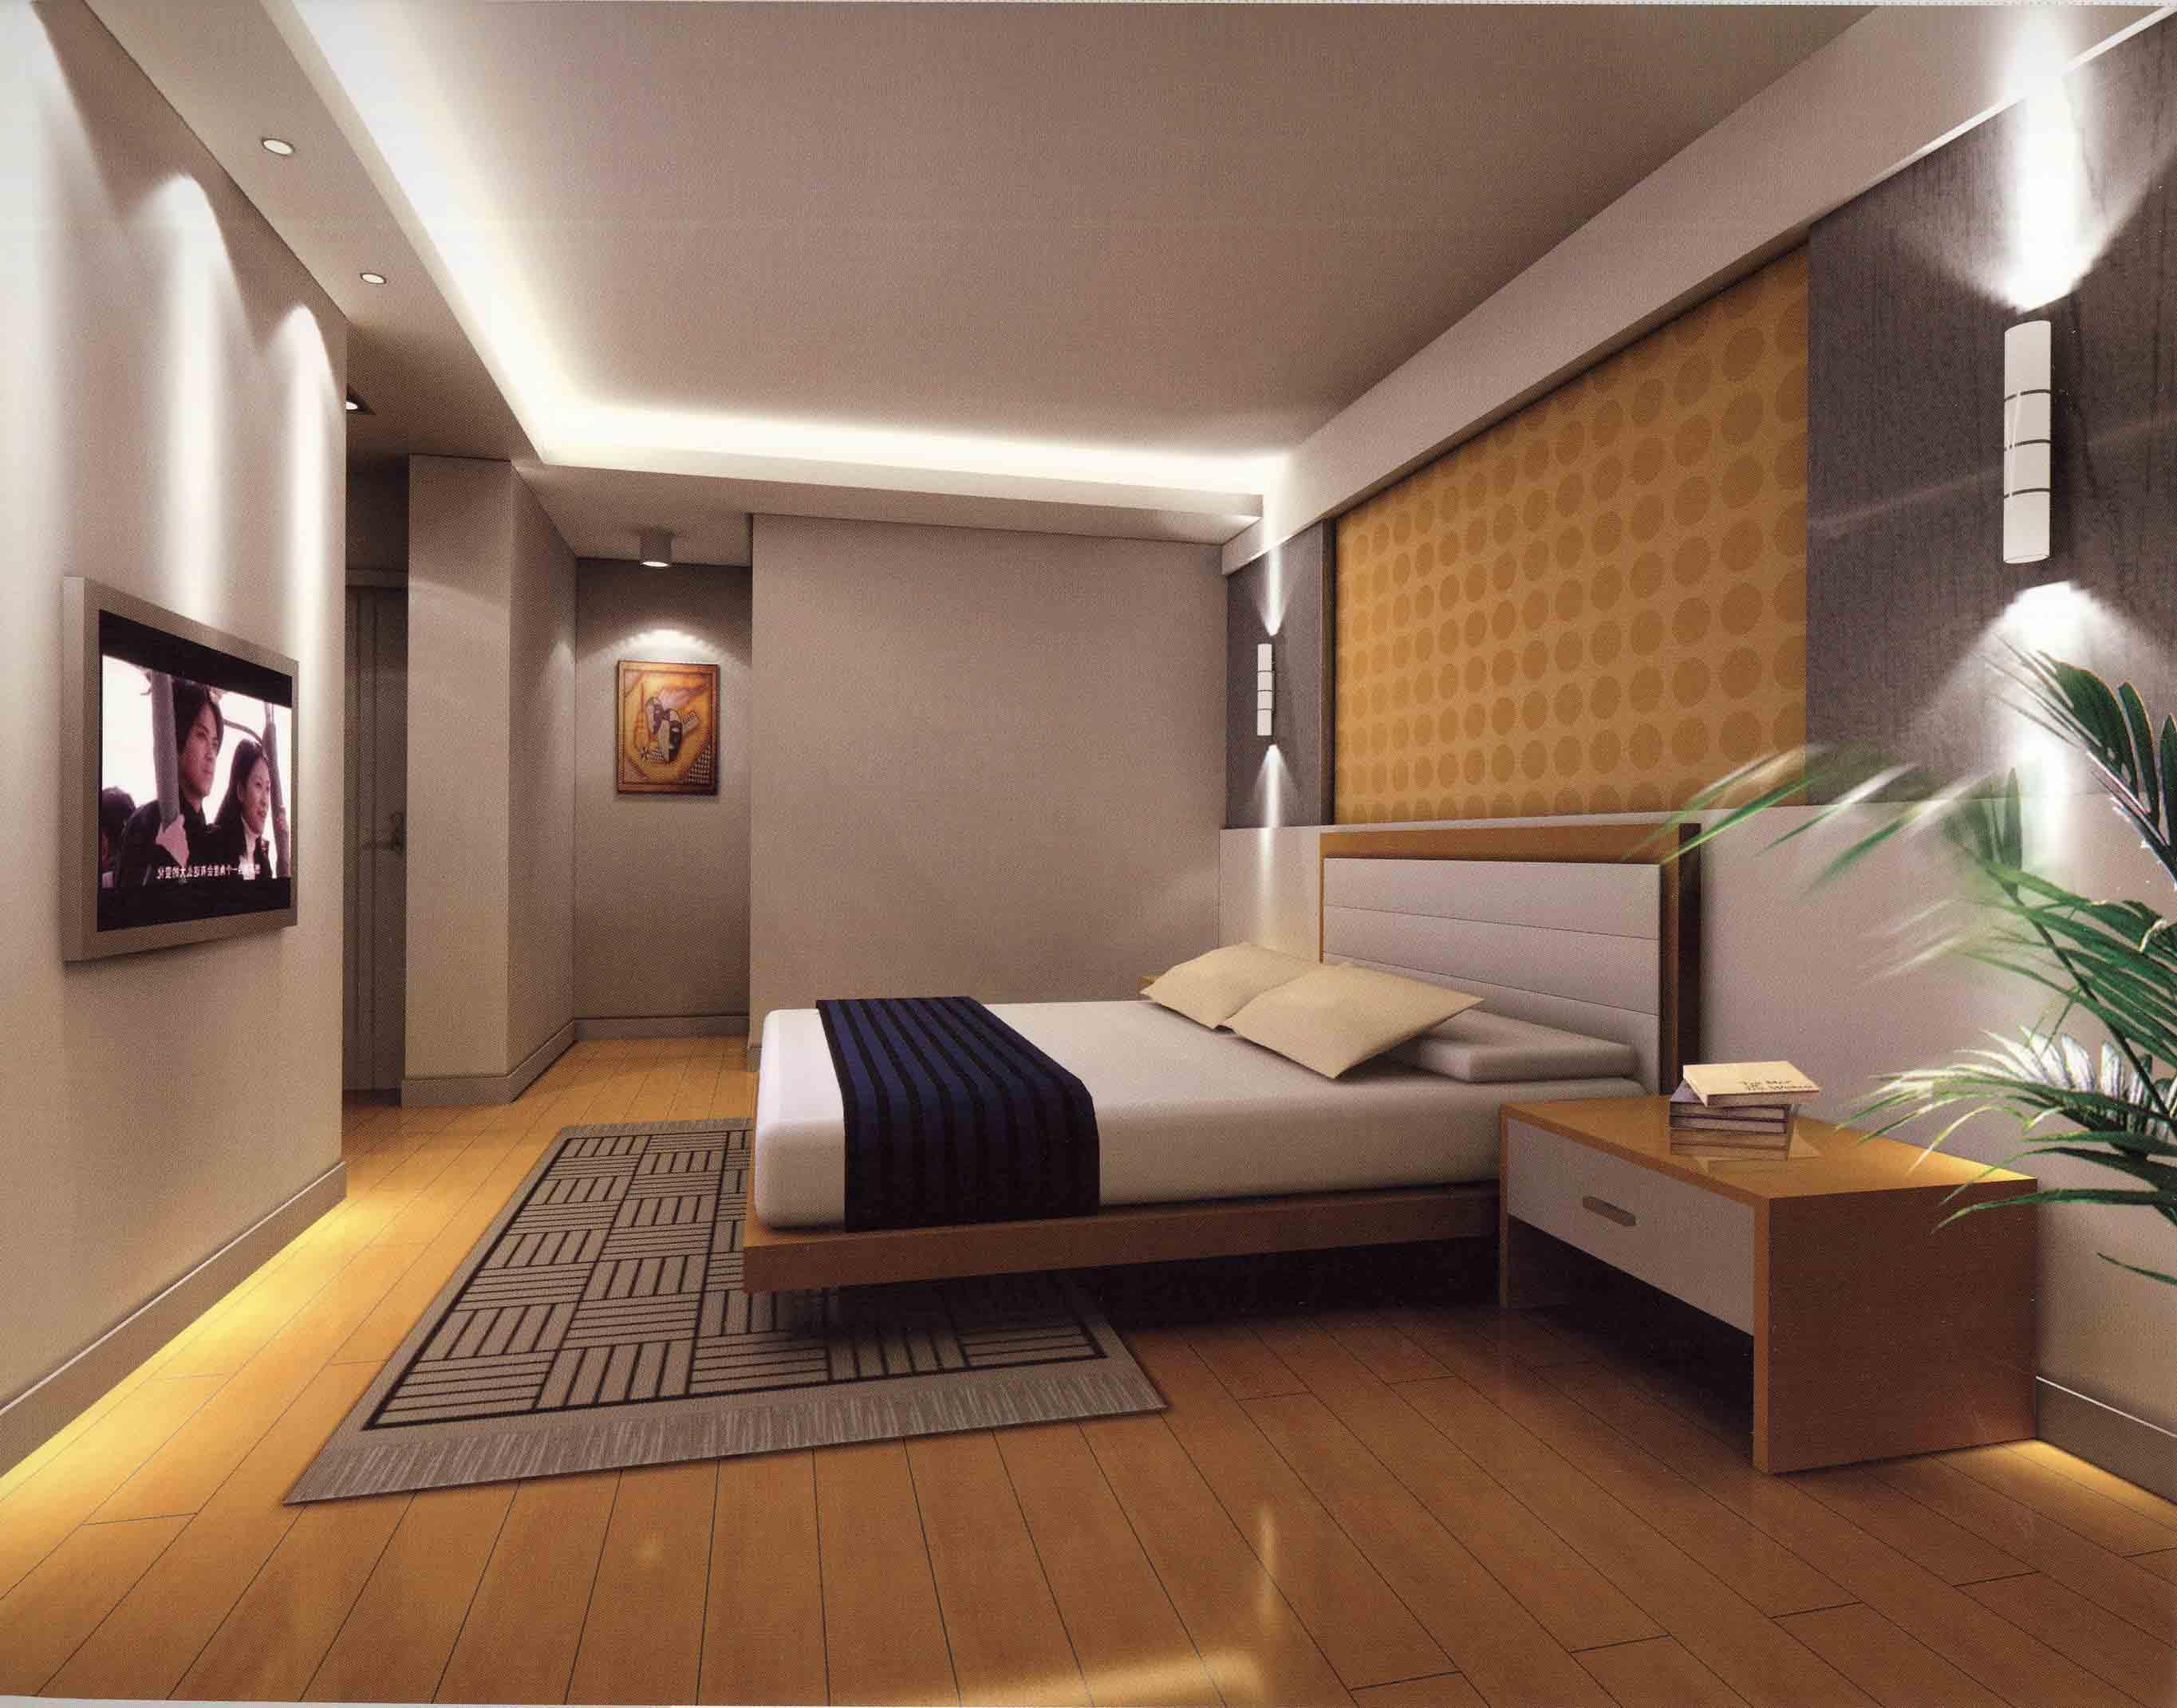 Bedroom Design Gallery For Inspiration - The WoW Style on Bedroom Reference  id=65961